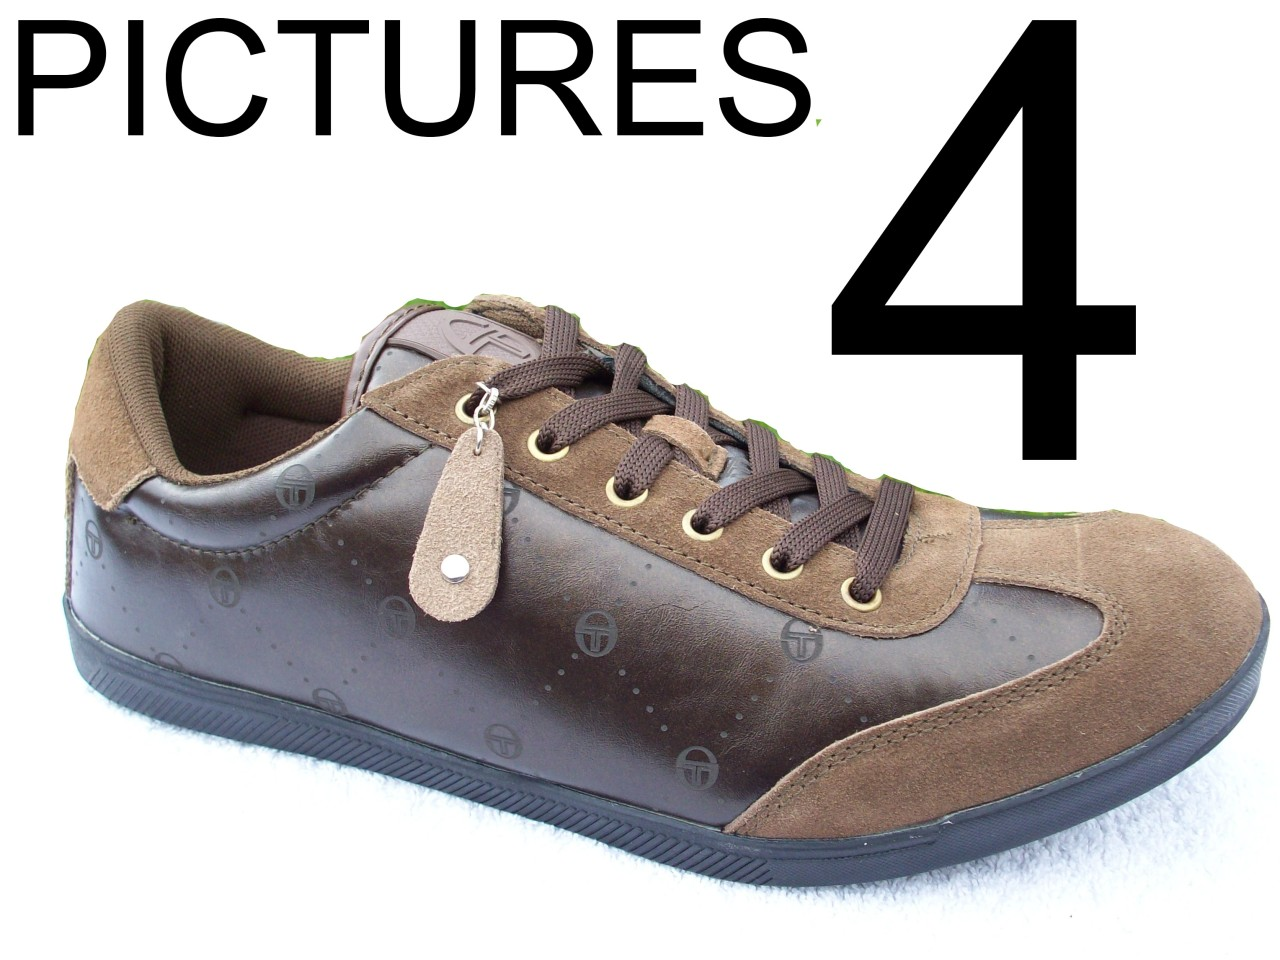 MENS-SIZE-6-7-BROWN-LEATHER-SUEDE-SERGIO-TACCHINI-LACE-SPORTS-TRAINERS-SHOES